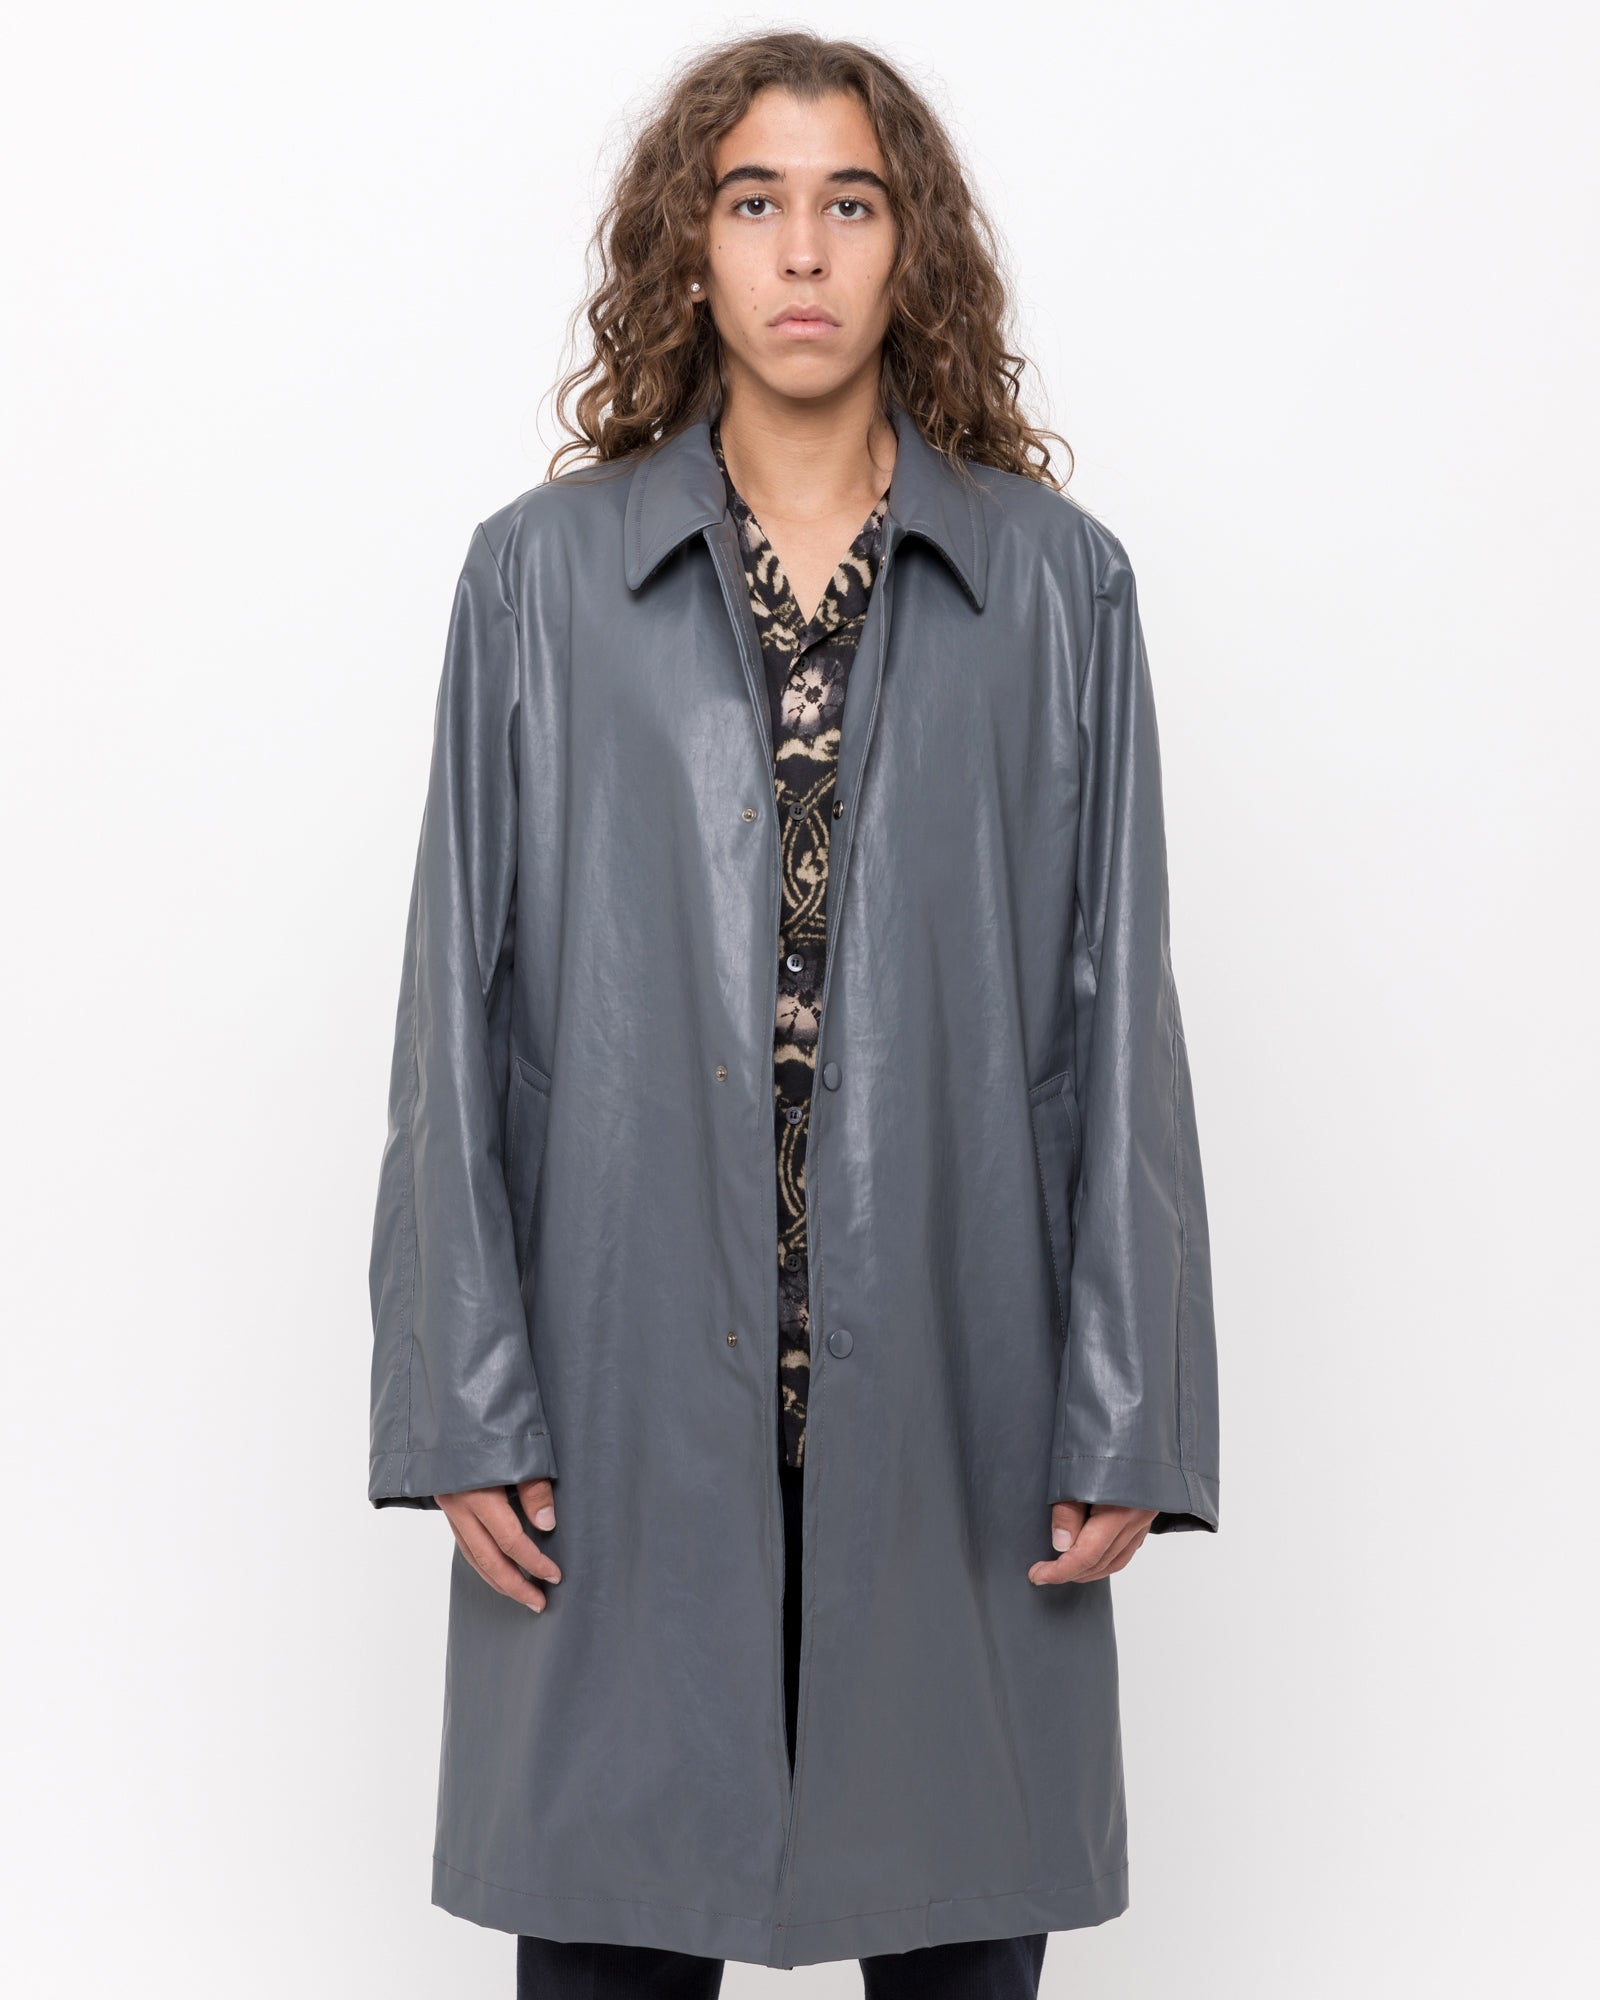 Roal Coat in Gray